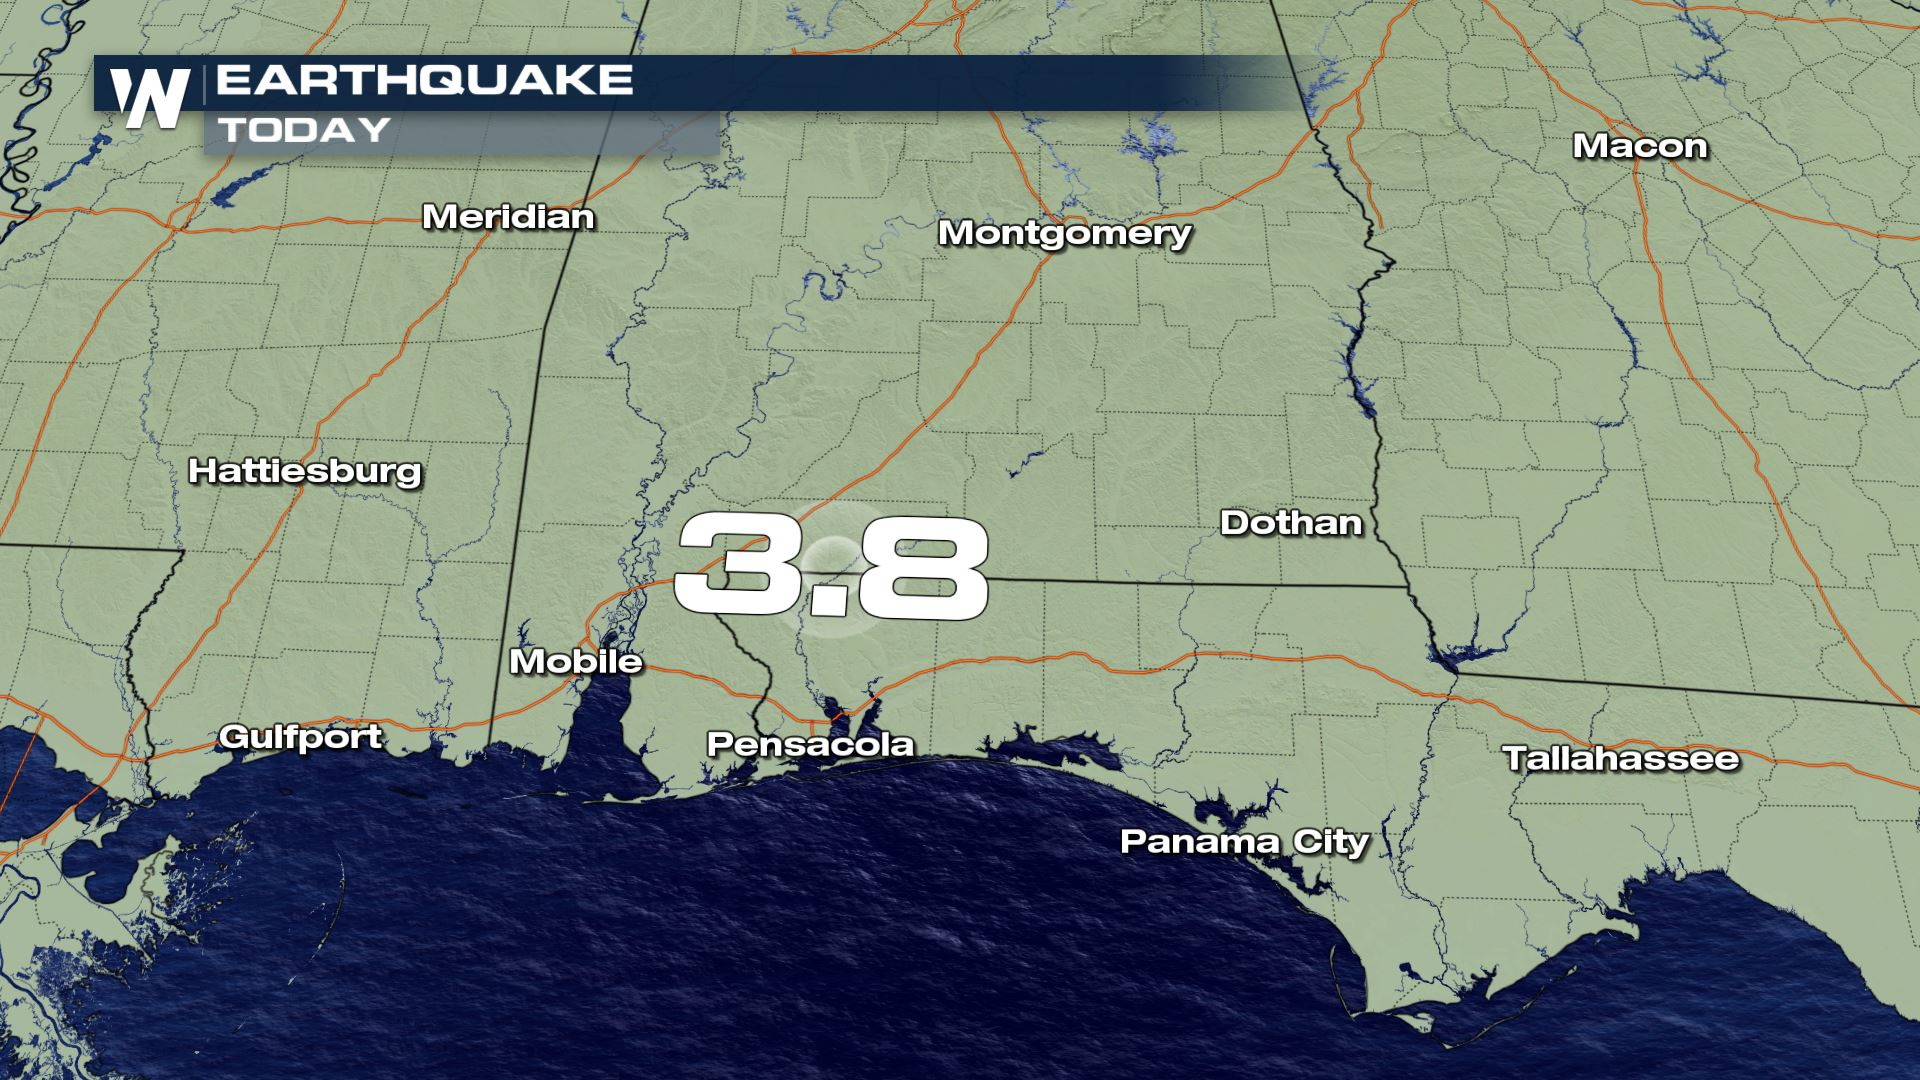 3.8 magnitude earthquake happened in Alabama Thursday morning